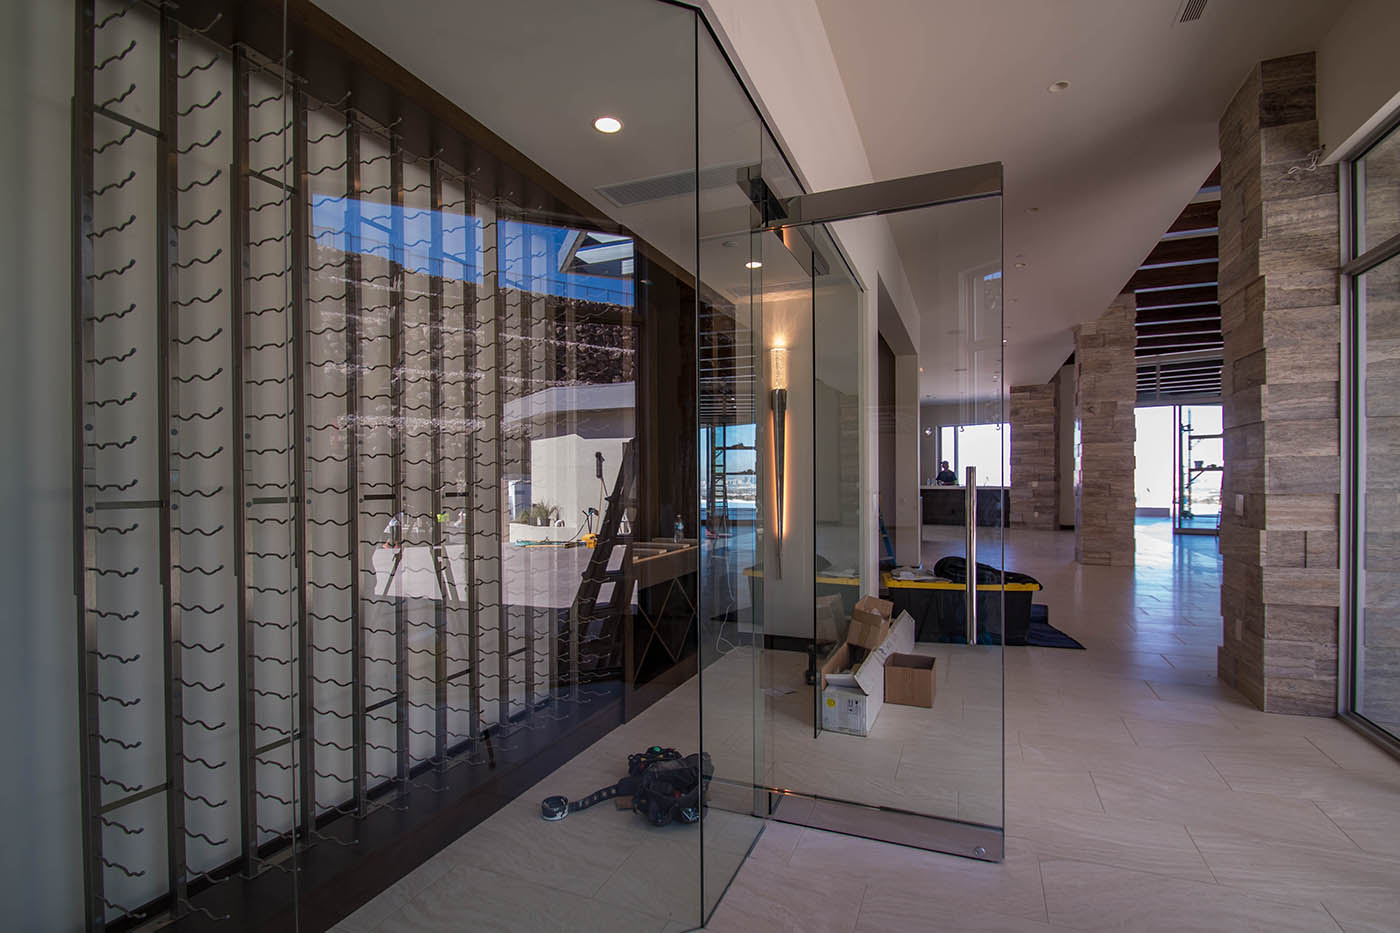 Boulderback Sunwest Custom Home Project | A Cutting Edge Glass & Mirror